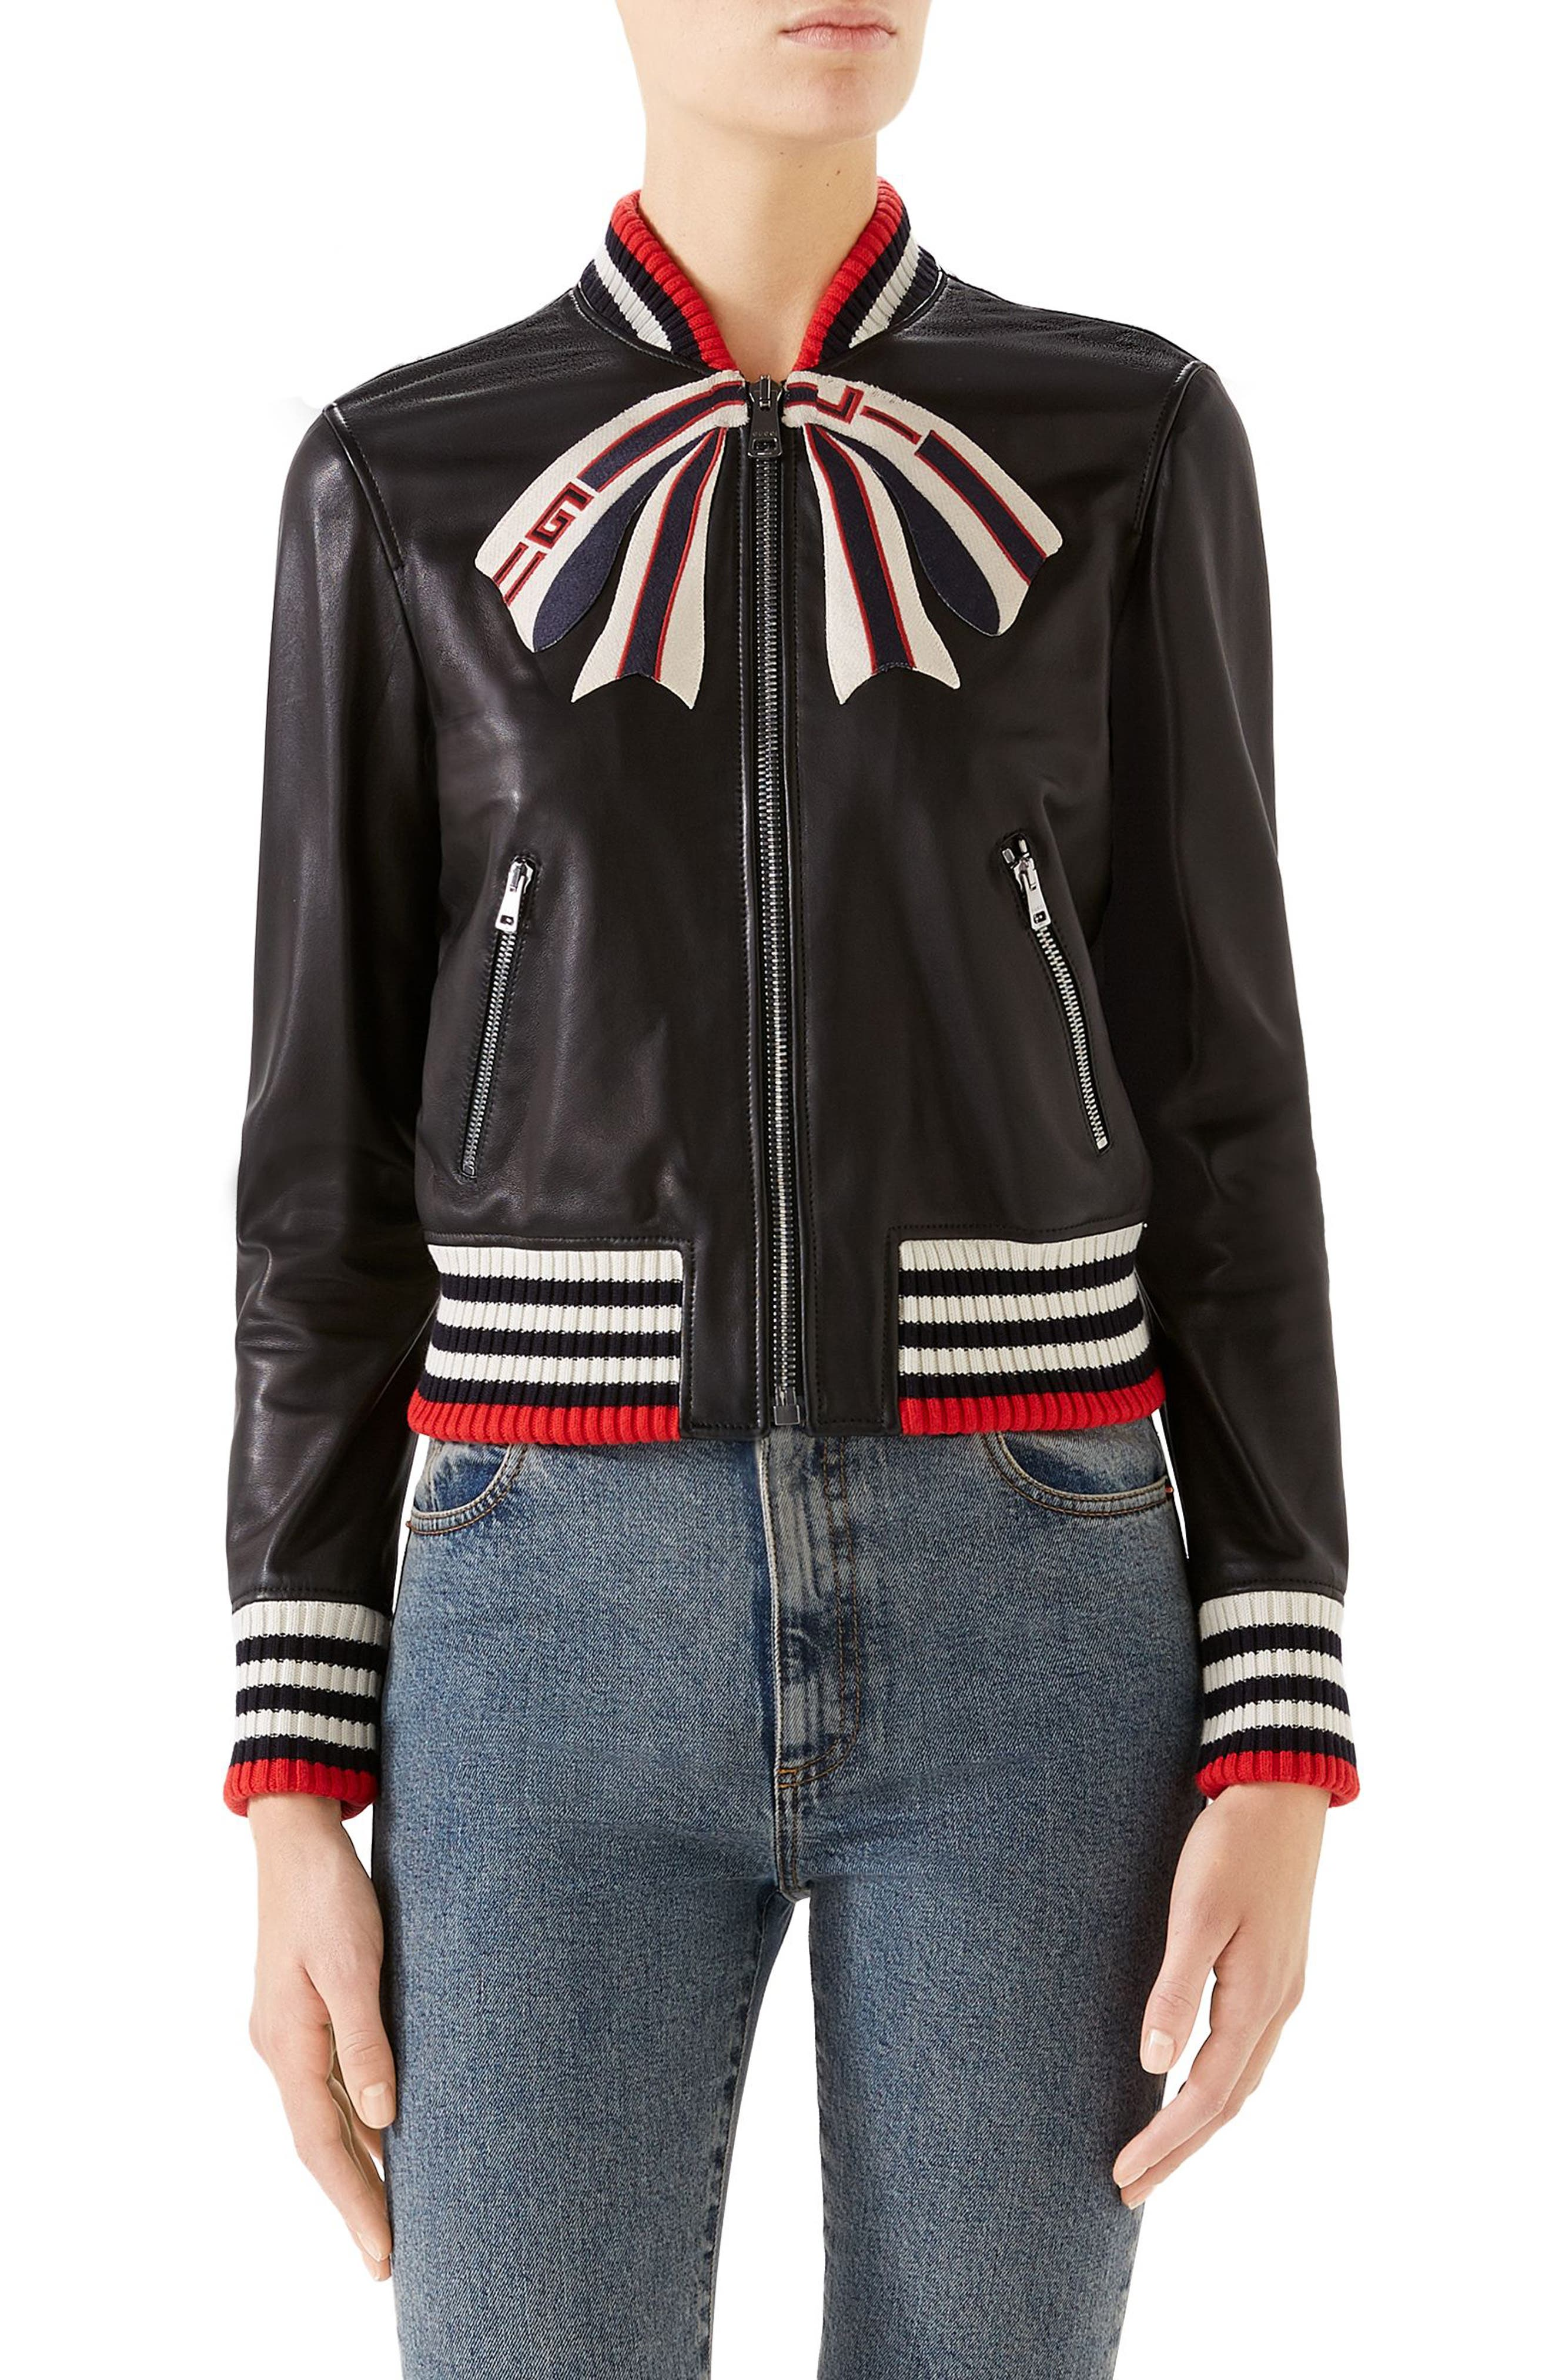 GUCCI Bow Leather Bomber Jacket, Main, color, 1082 BLACK/ MULTICOLOR